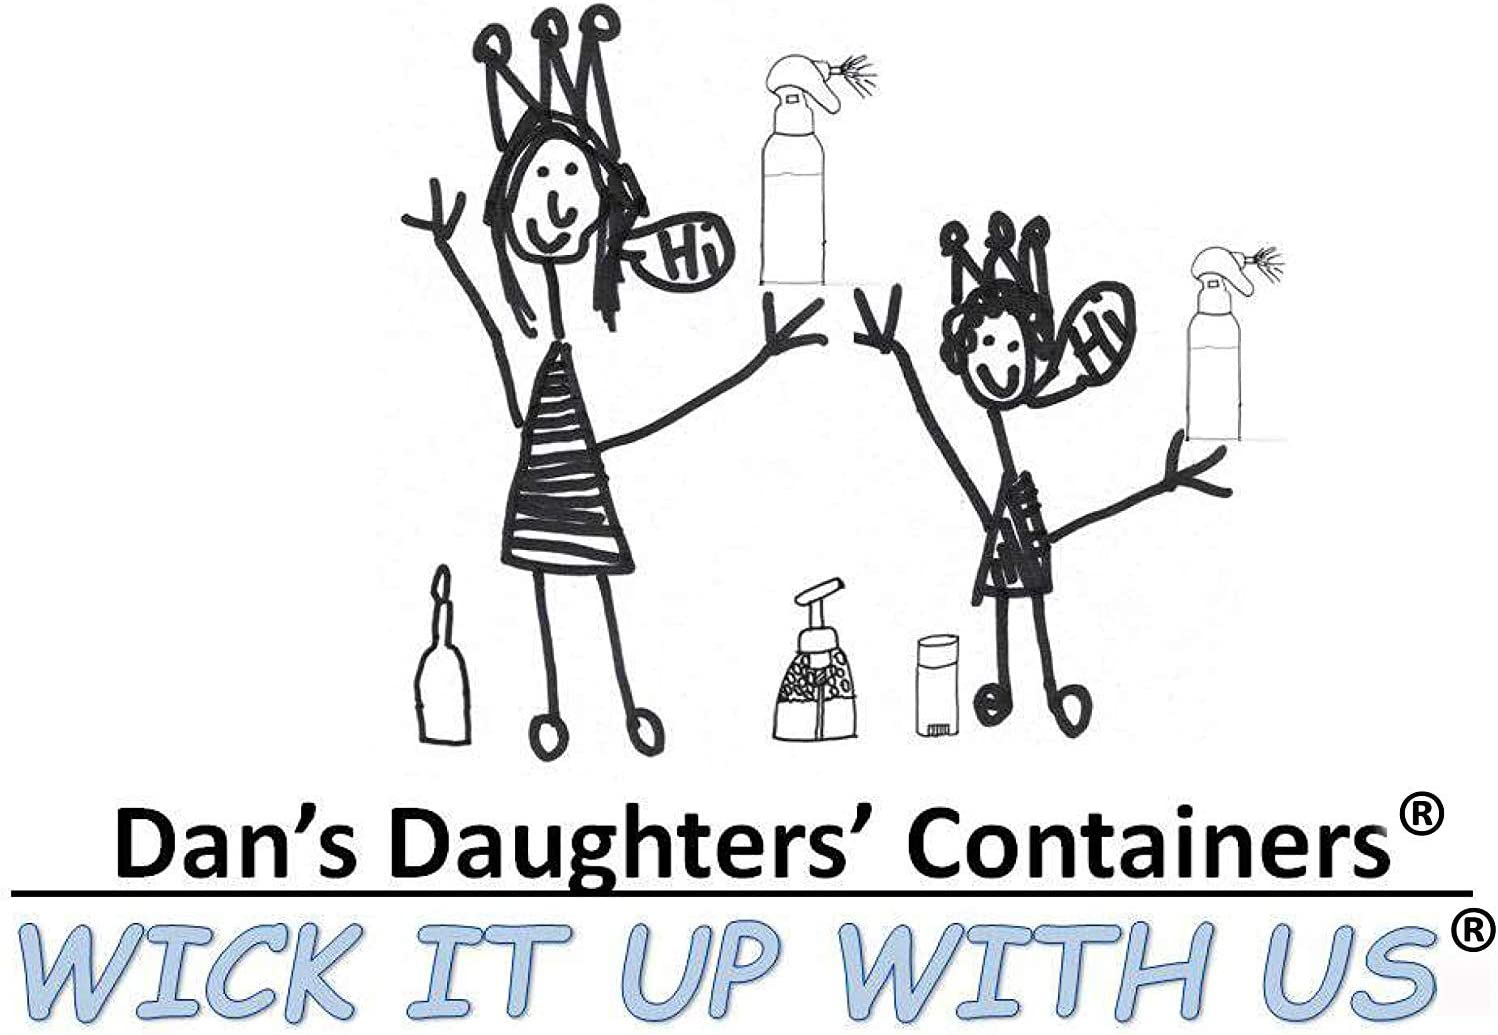 Dans Daughters Containers 3//8 x Five Feet Wick It Up with US Round Fiberglass Wick Kerosene Oil Lamps Lanterns Replacement Wicks Torch Wine Bottle Candle 38